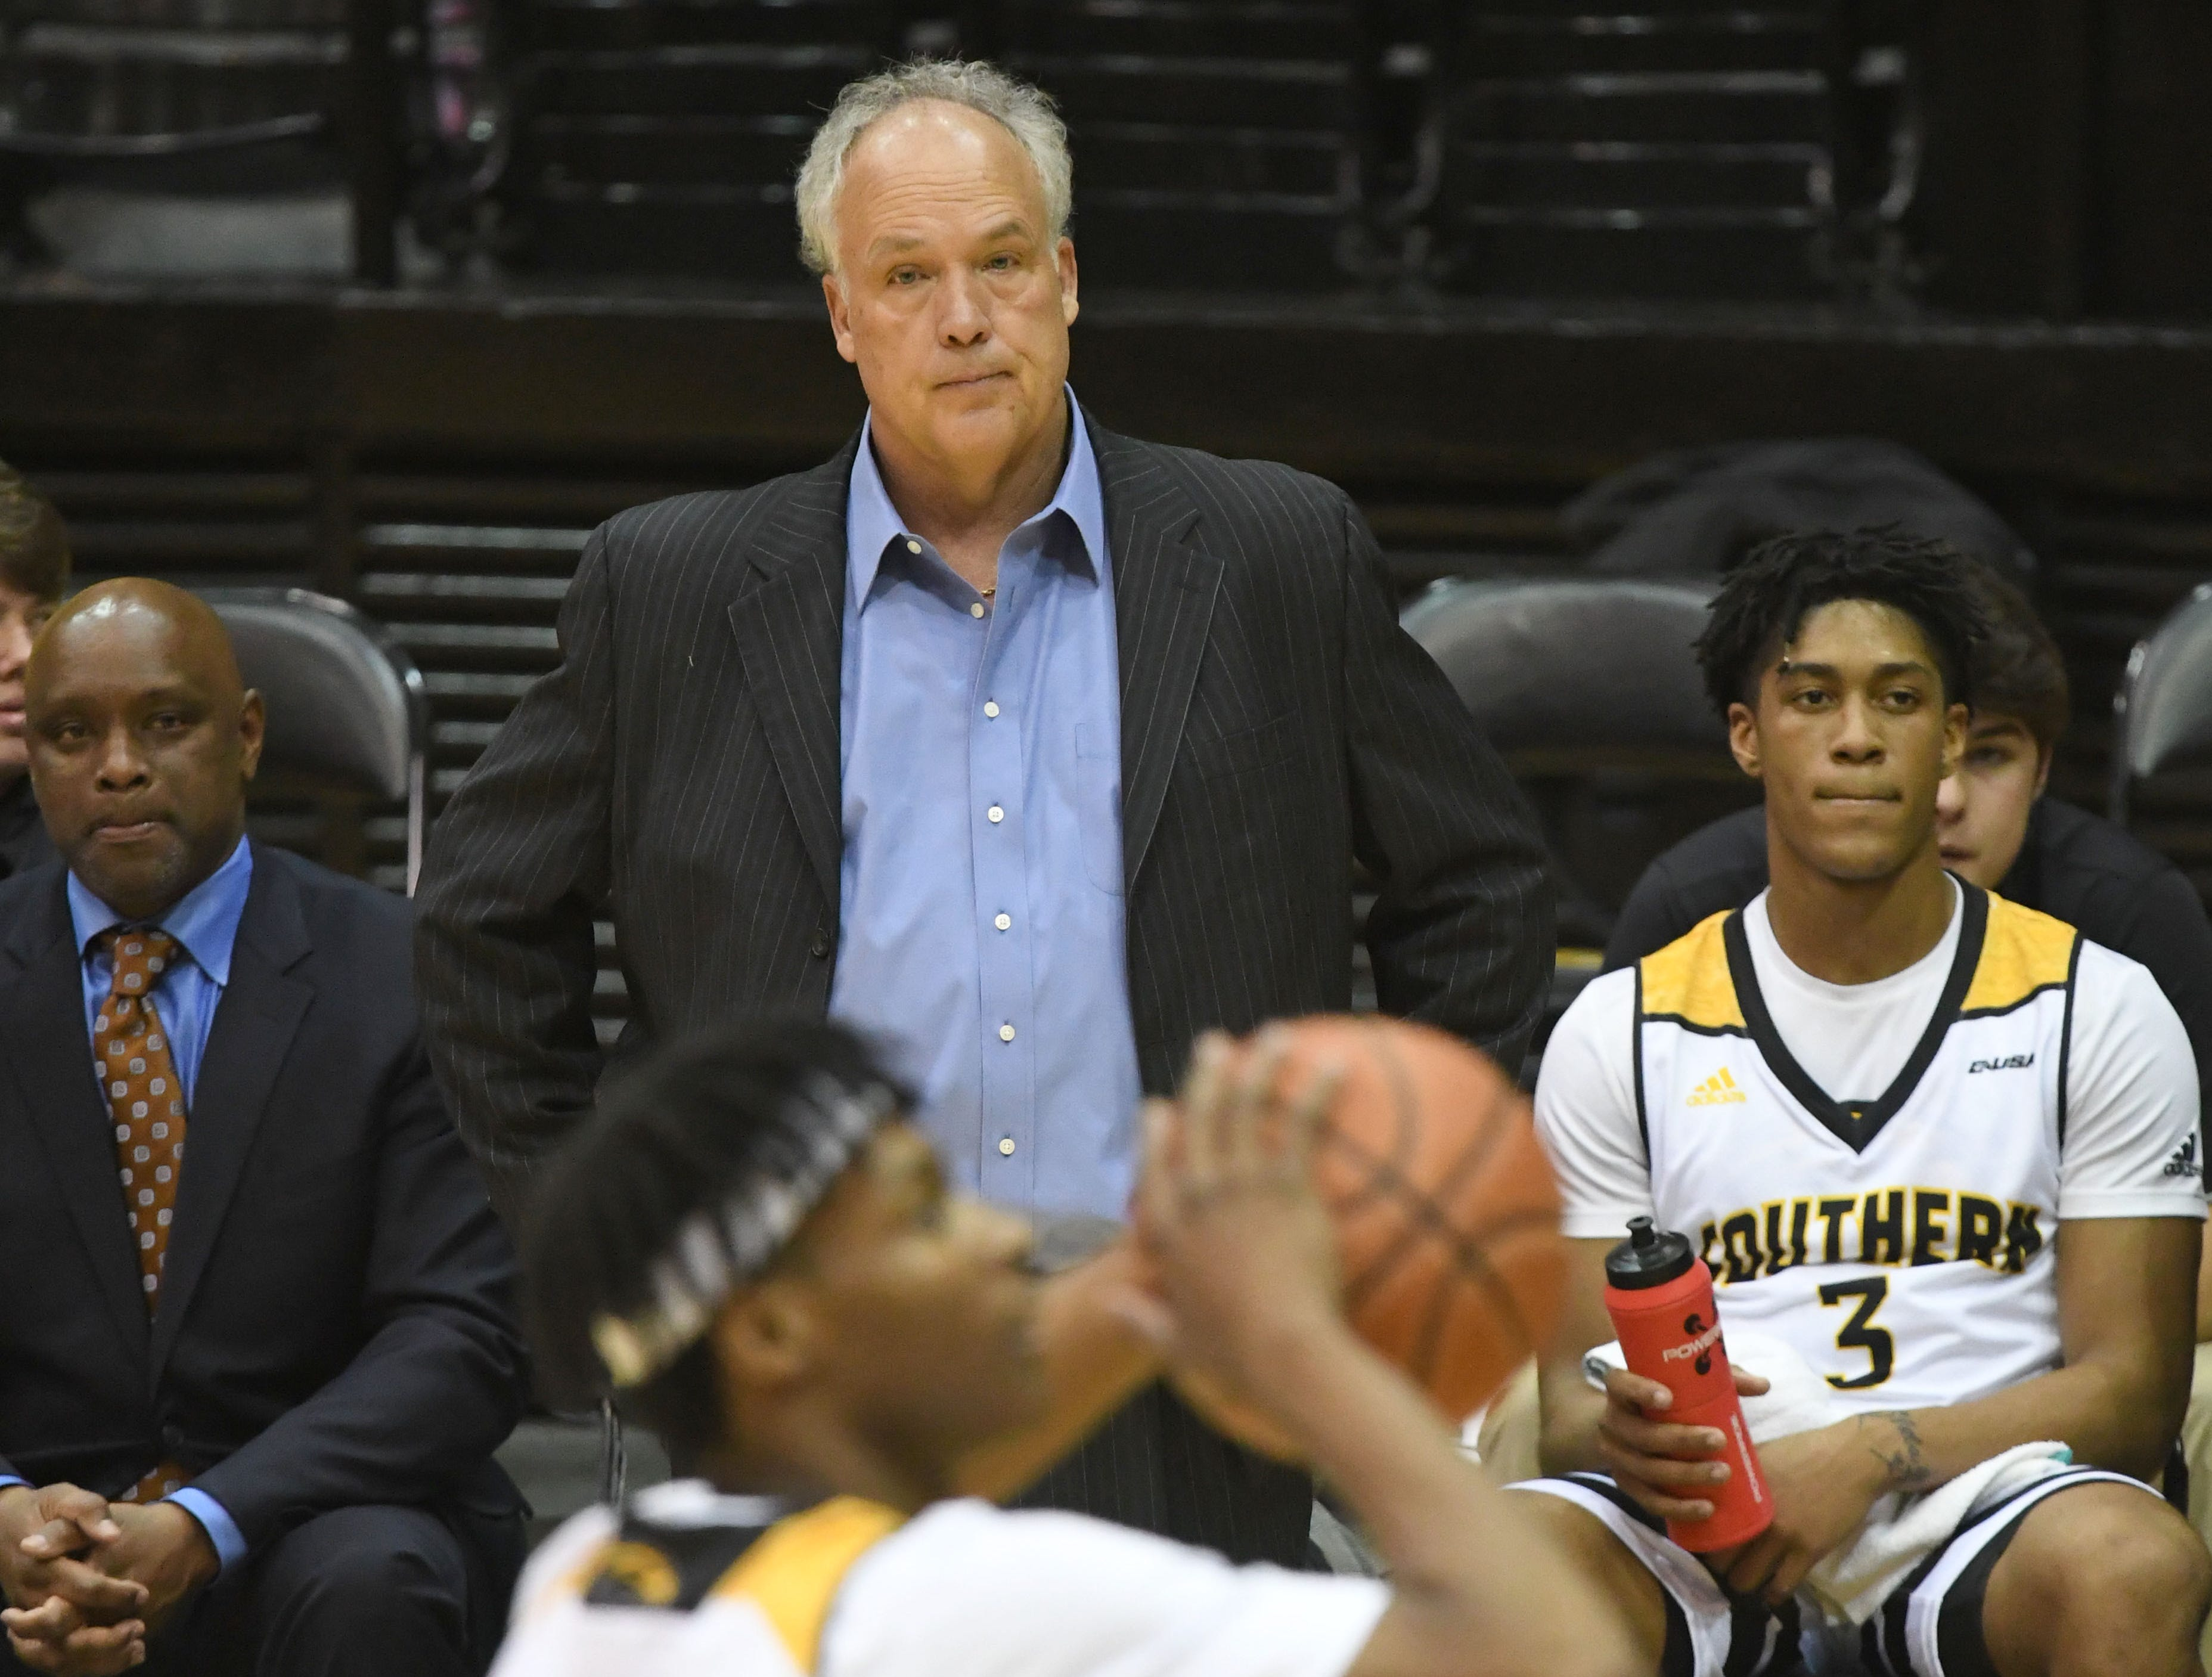 Southern Miss head coach Doc Sadler watches his team in a game against Millsaps in Reed Green Coliseum on Tuesday, December 11, 2018.